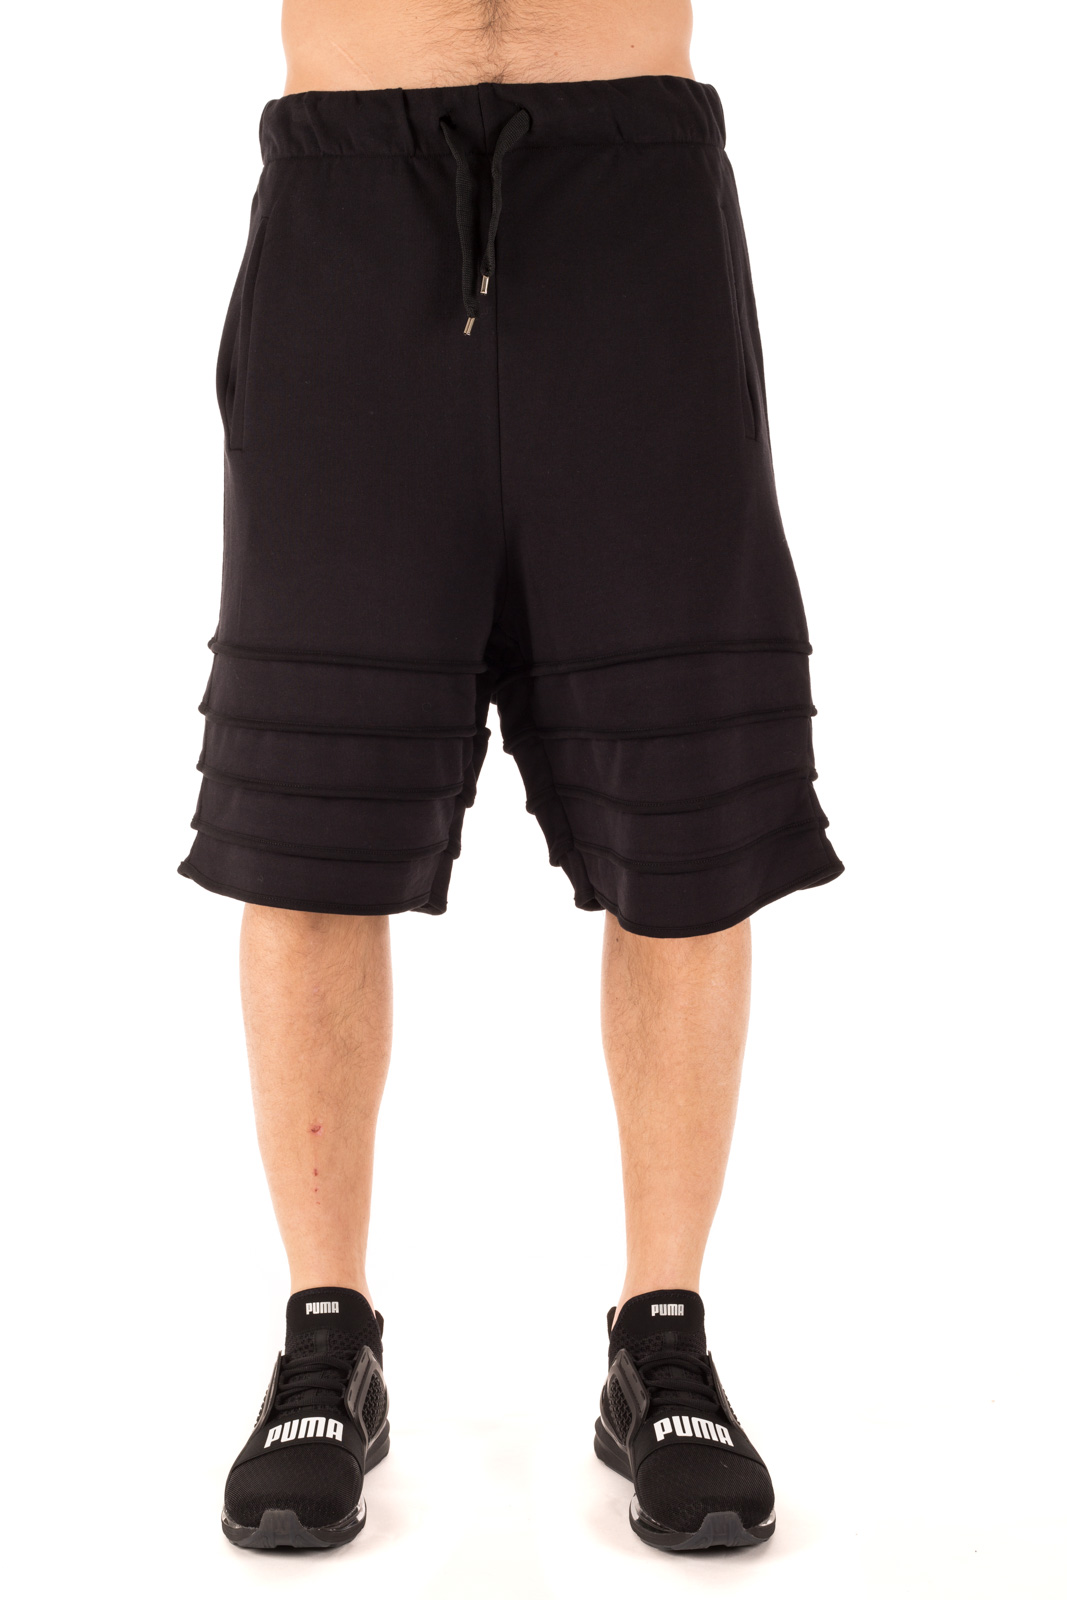 Numero 00 - Weaves Shorts Nero